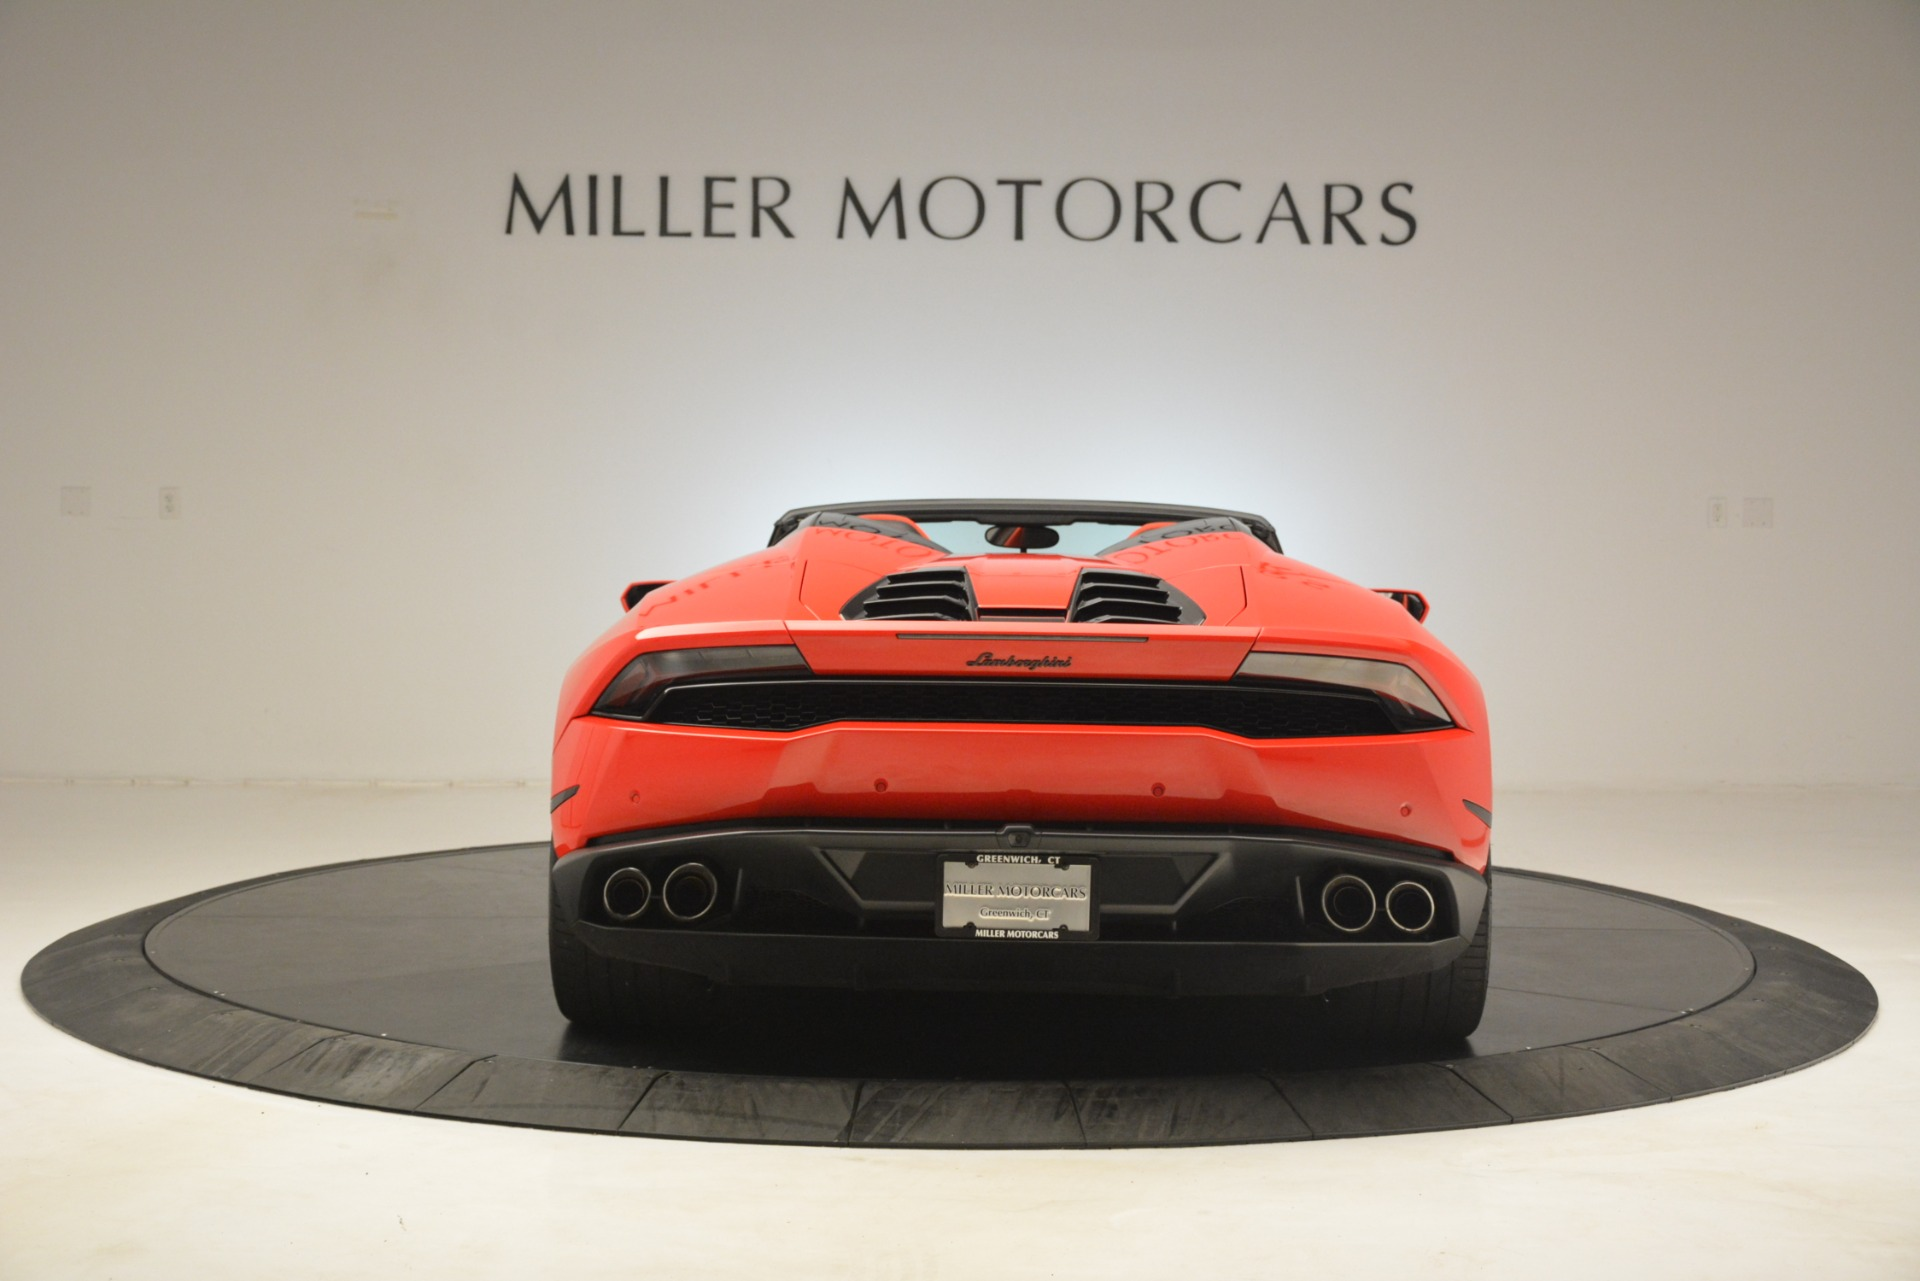 Used 2017 Lamborghini Huracan LP 610-4 Spyder For Sale In Greenwich, CT 3270_p4